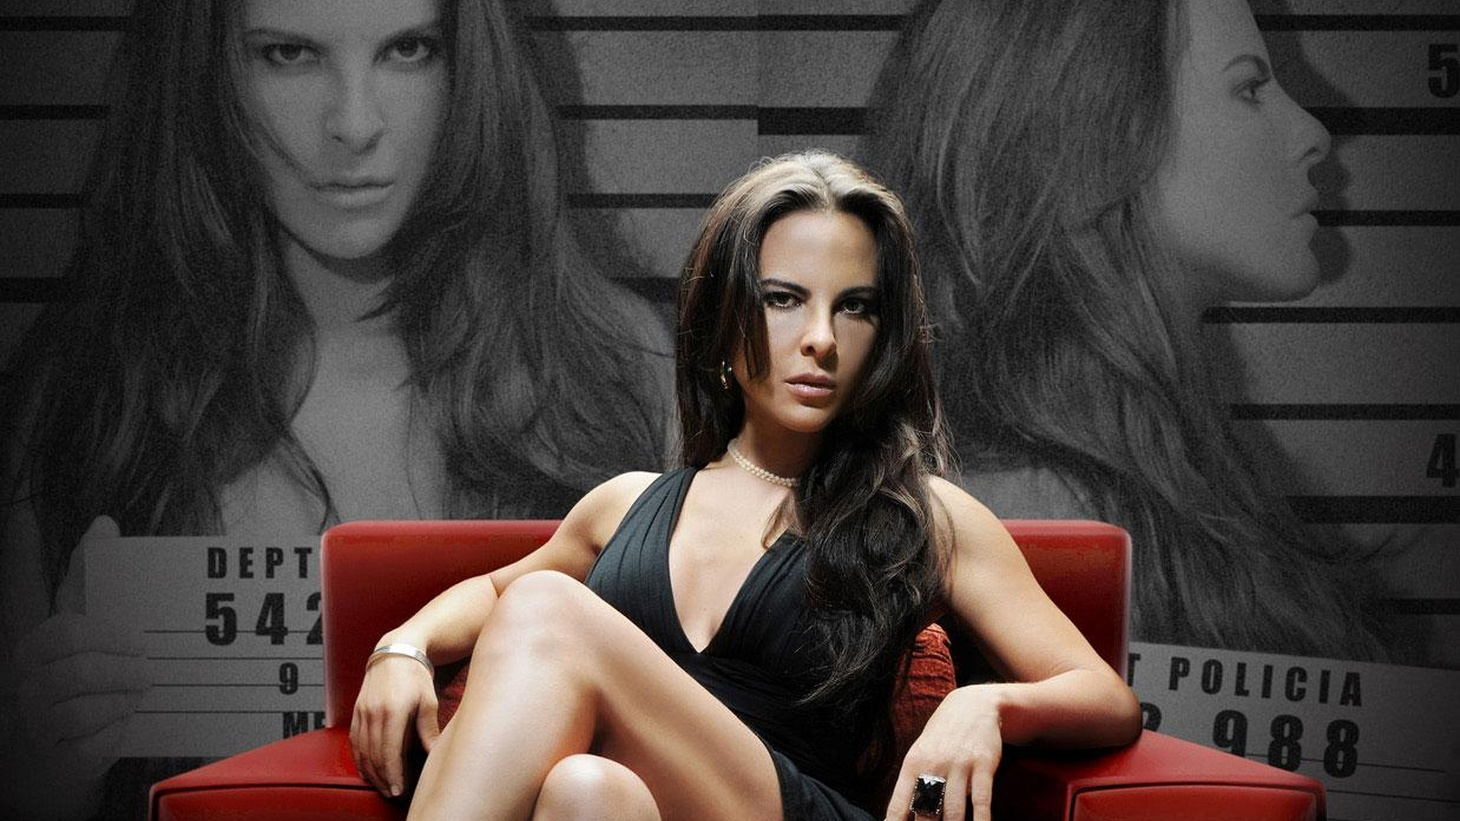 Mexican telenovela star Kate del Castillo faces Hollywood culture shock. Then, filmmakers Jeff Malmberg and Chris Shellen go in search of an audience for Marwencol.